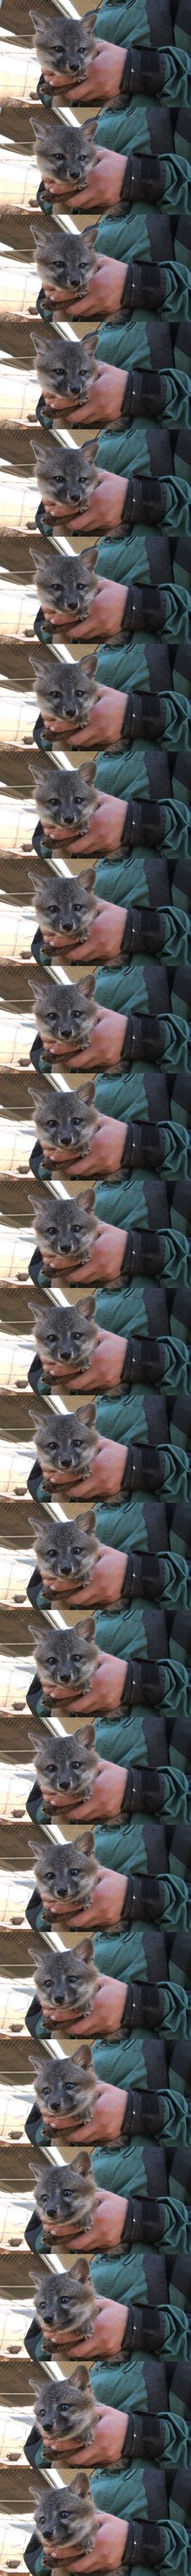 An unprecedented conservation effort saved these cute foxes from disappearing forever